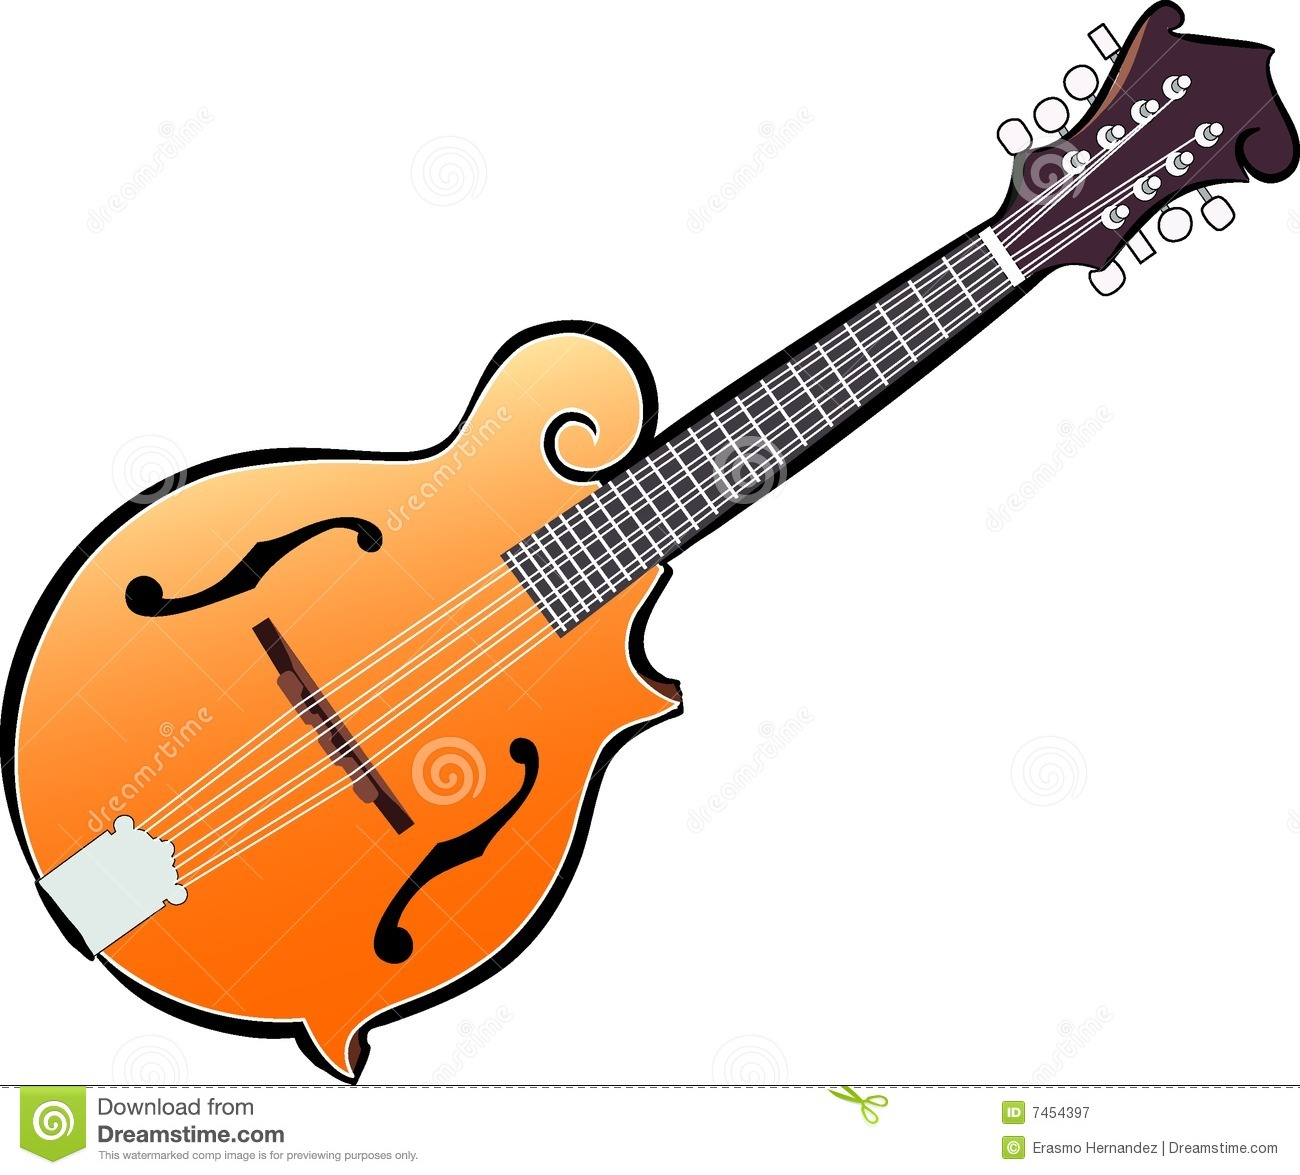 clipart guitar silhouette at getdrawings com free for personal use rh getdrawings com clip art guitar w/ loose strings clip art guitar